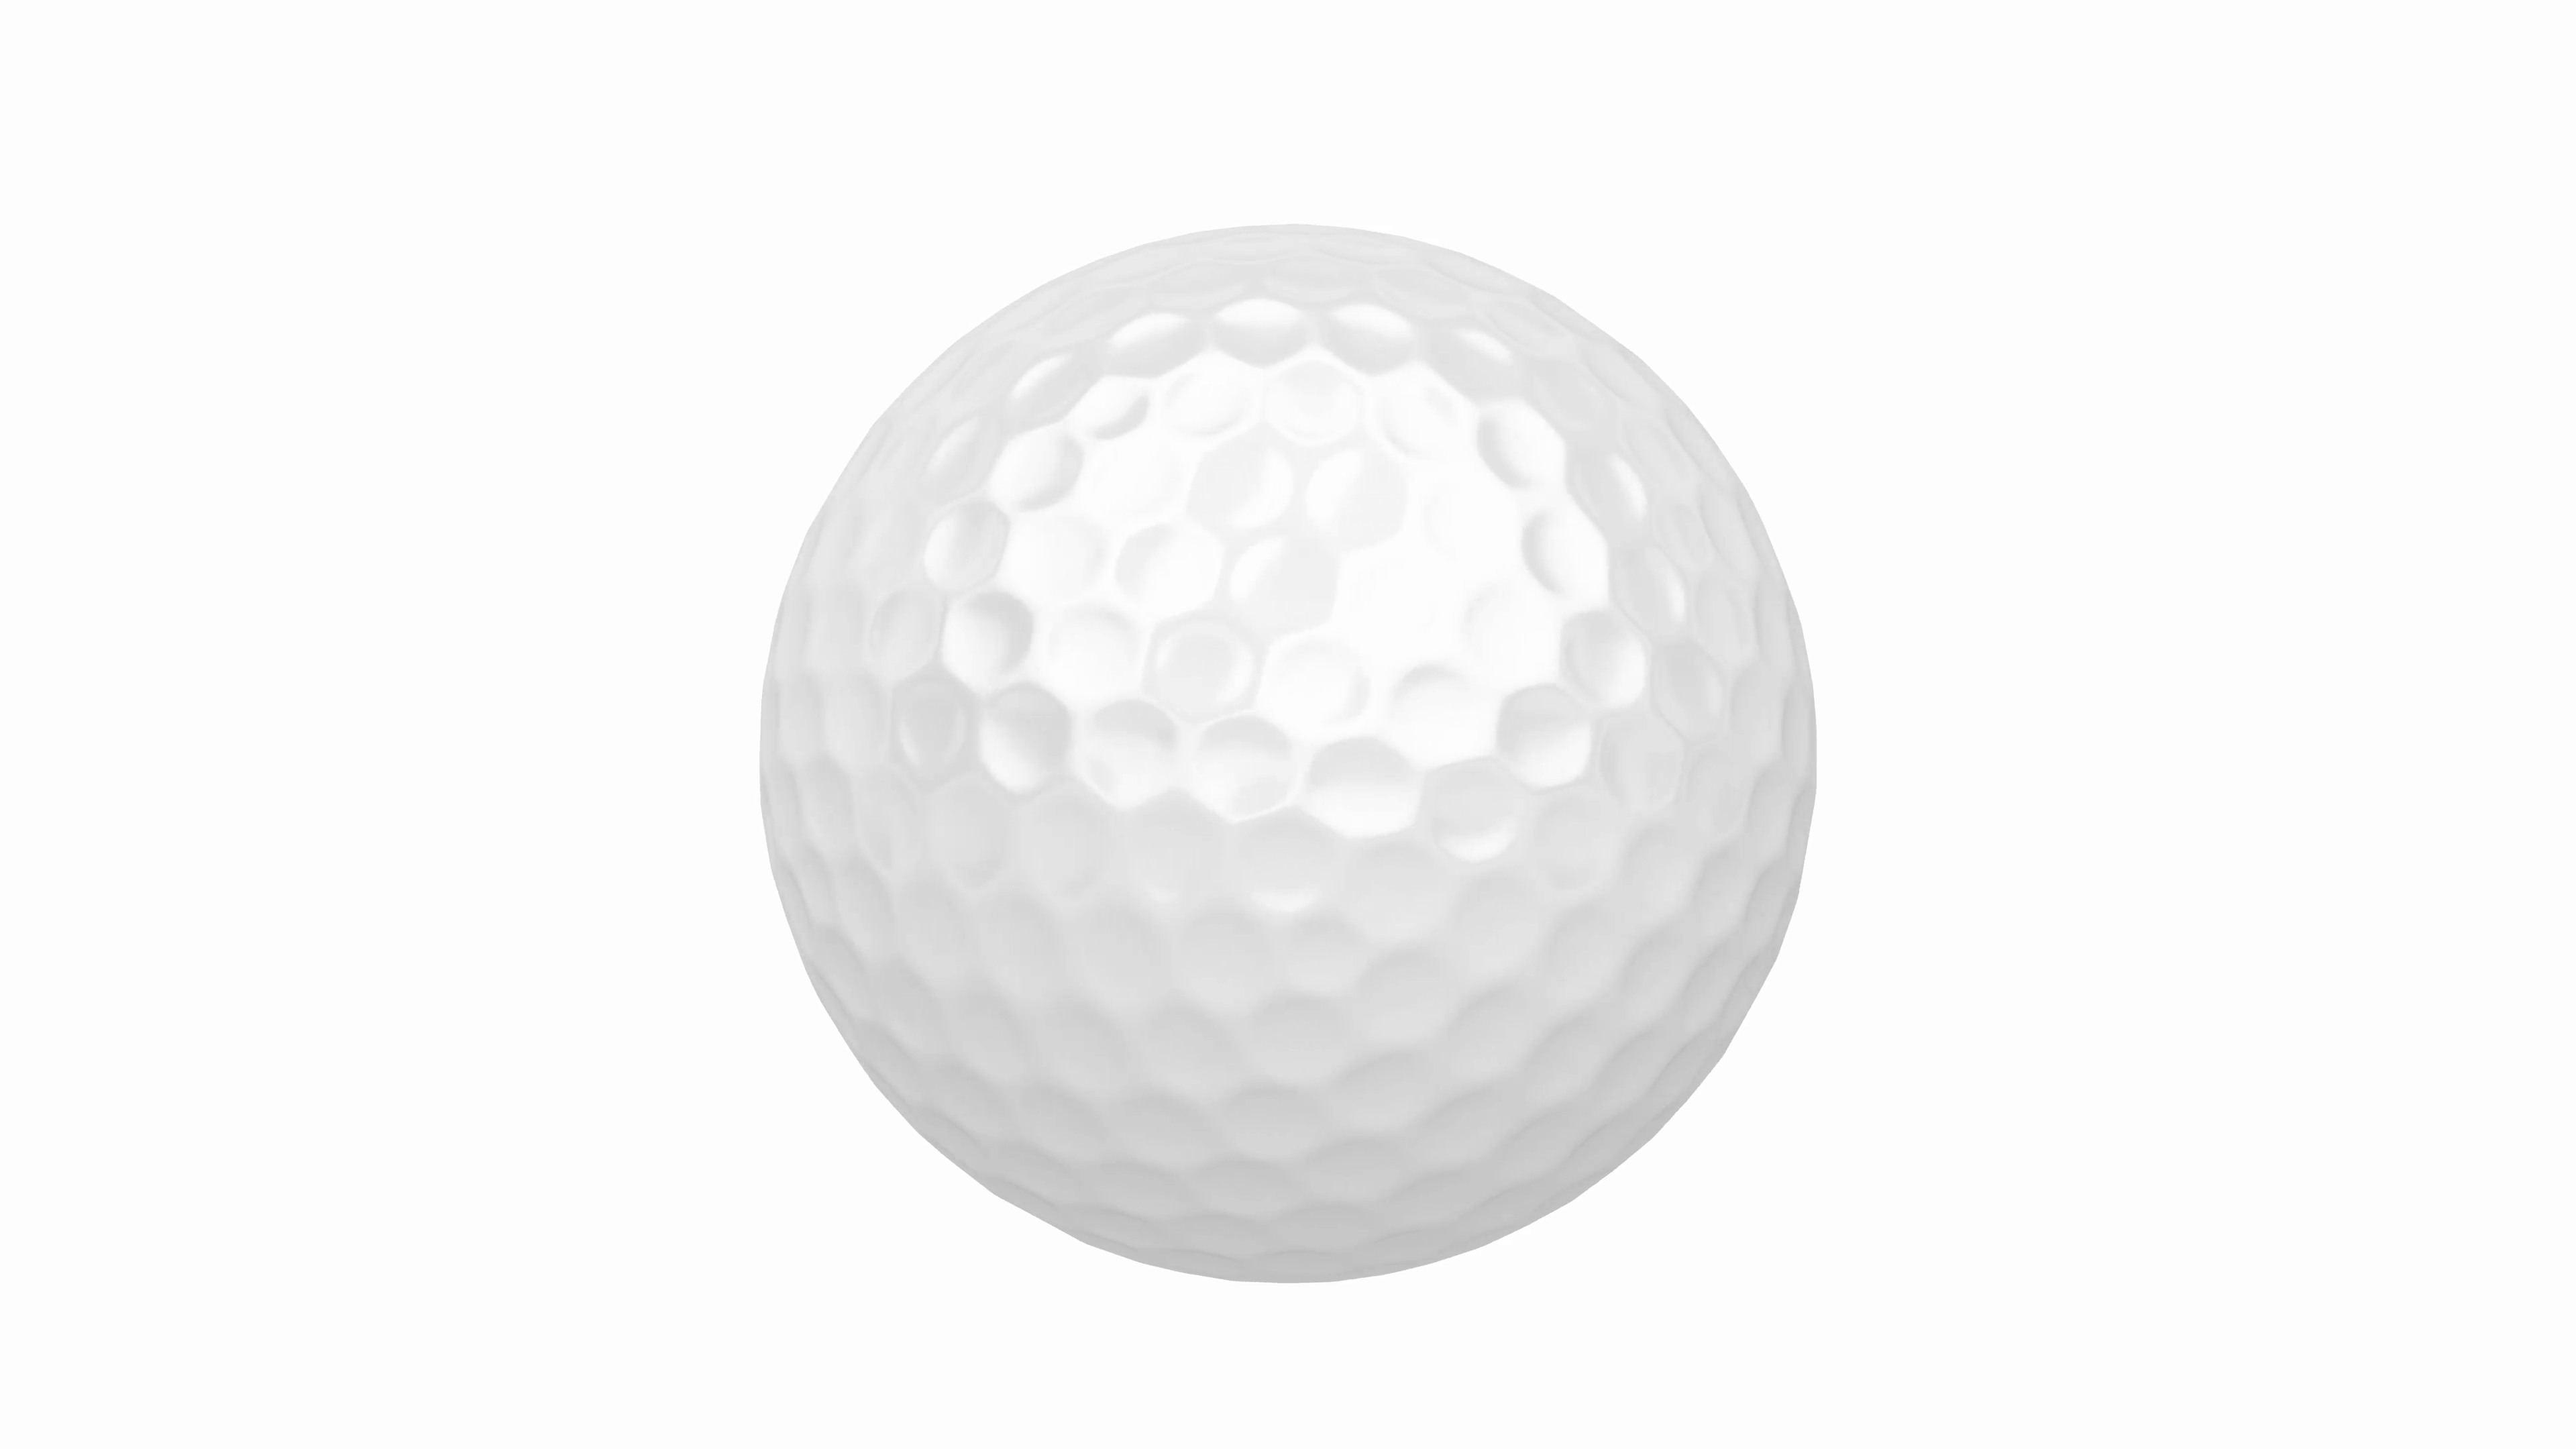 Golf Ball Png Free Golf Ball Png Transparent Images 201 Pngio